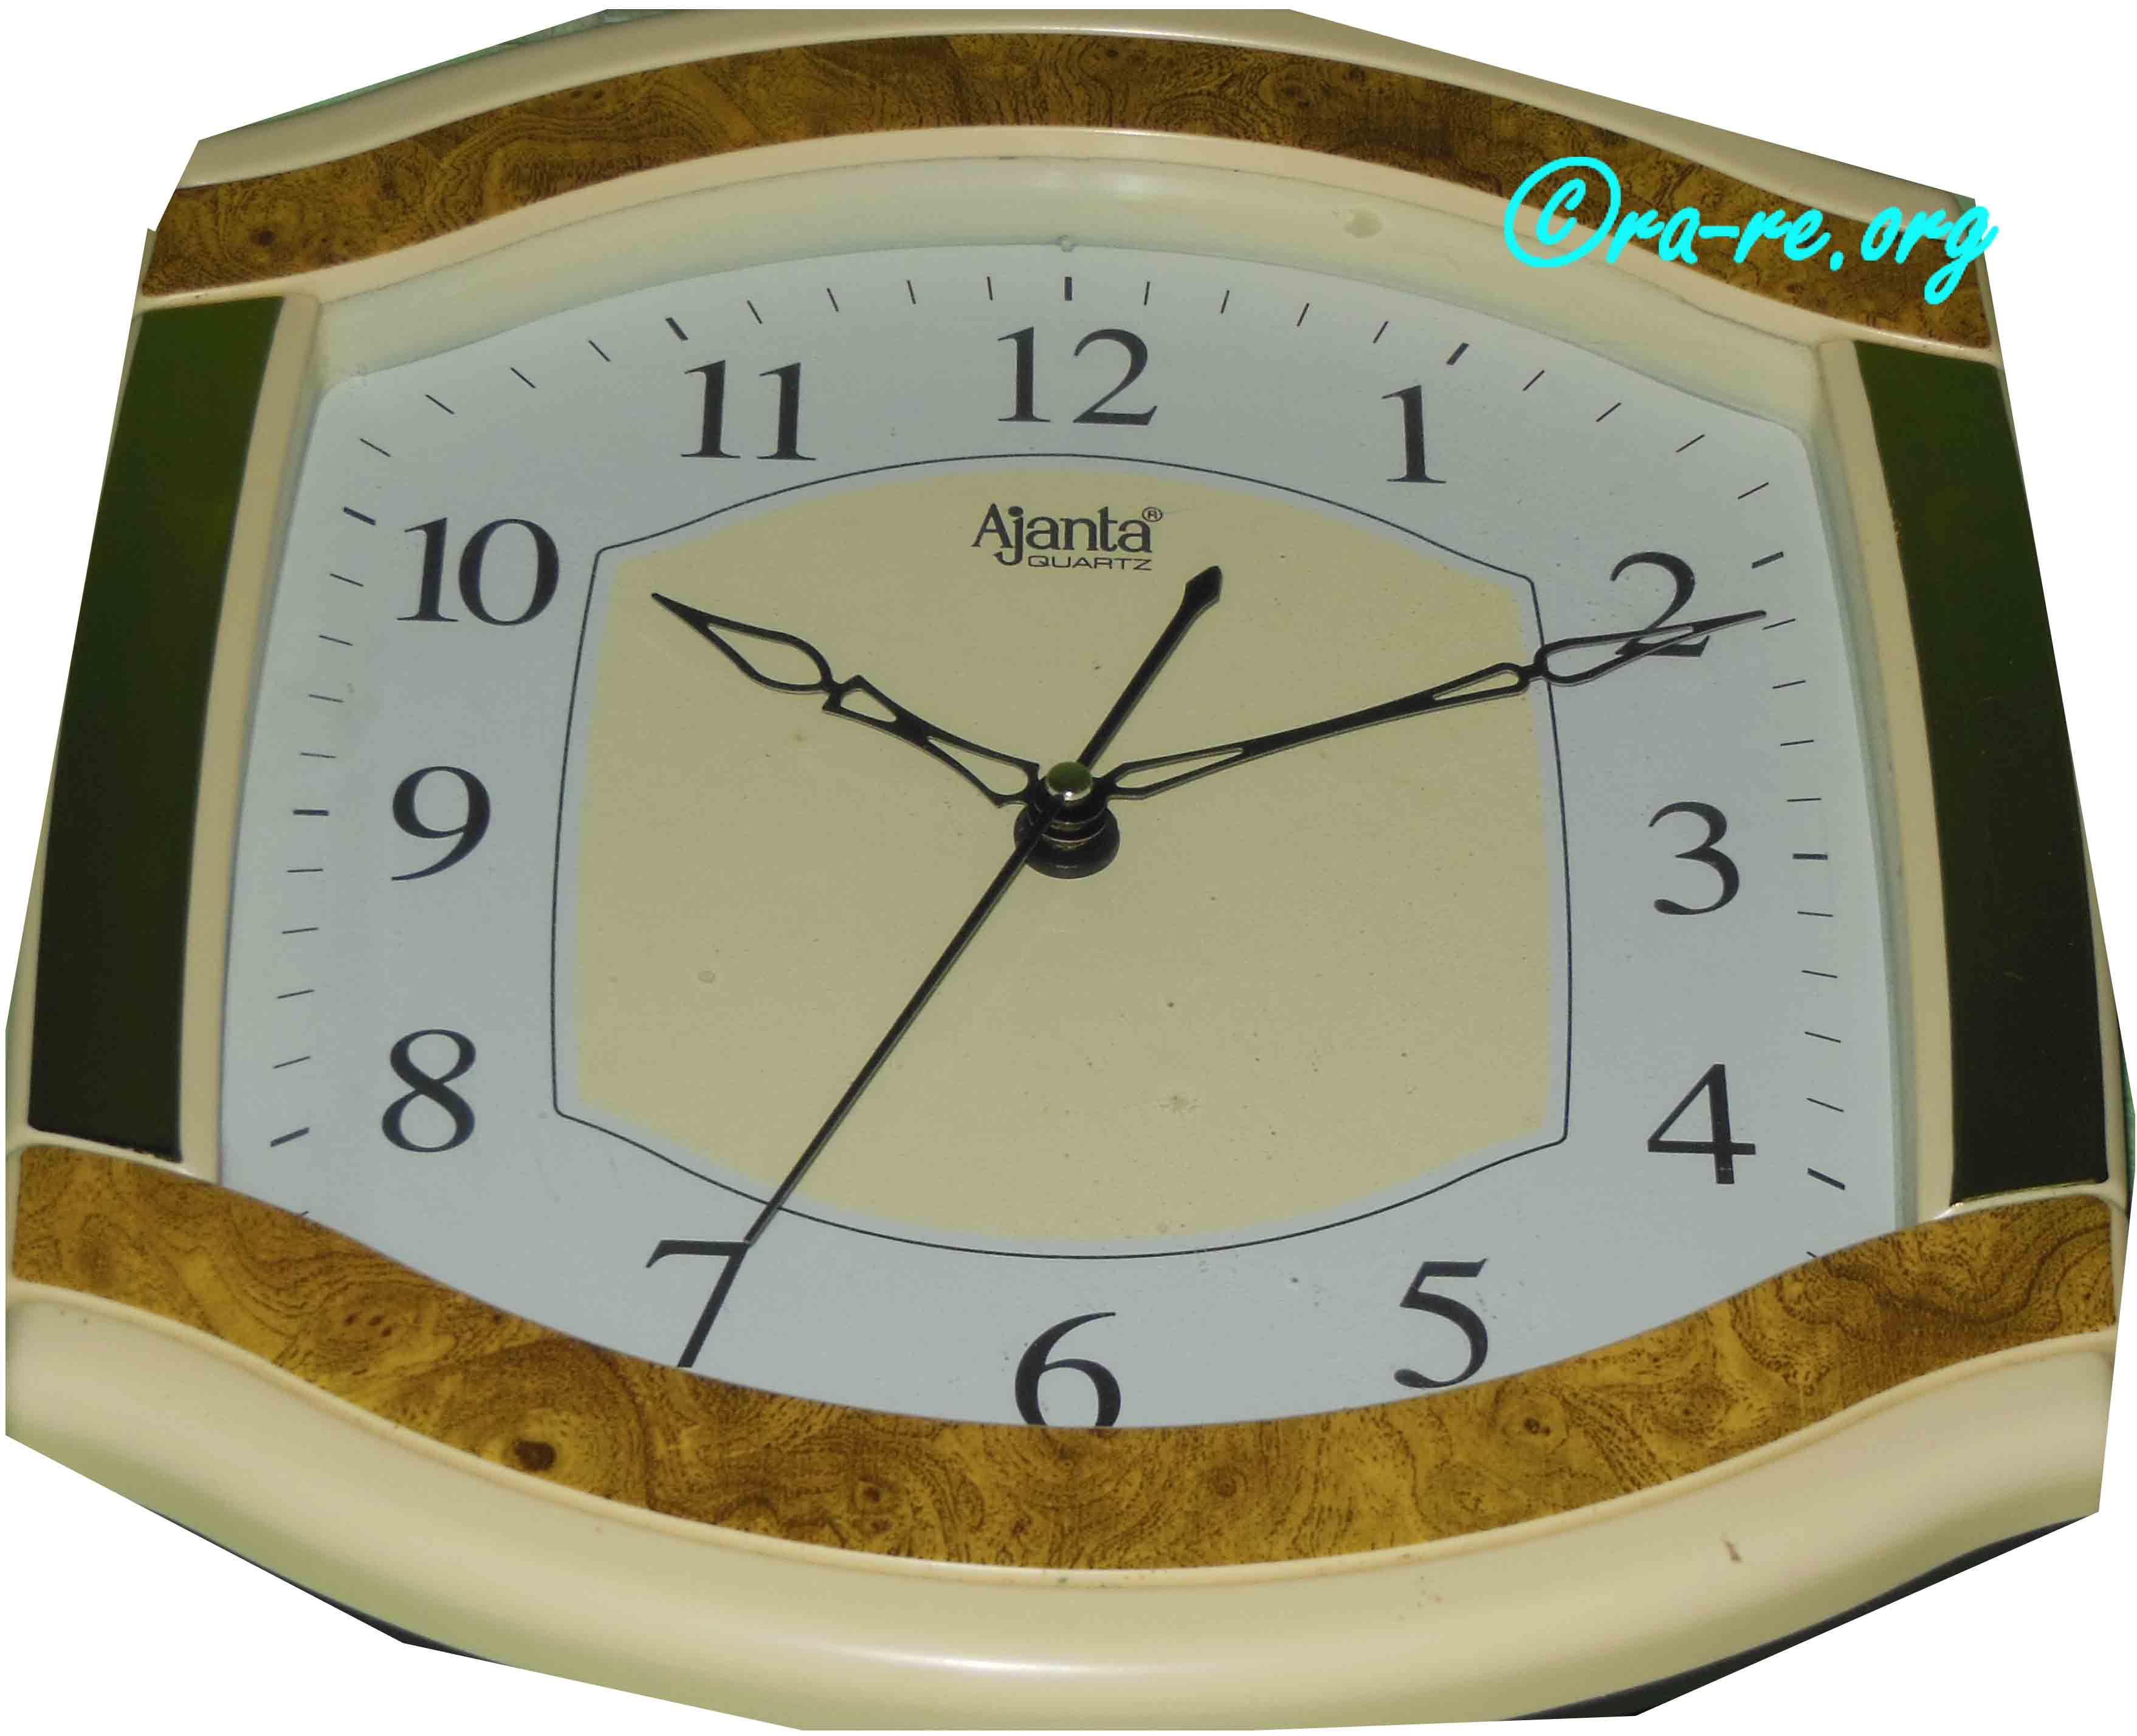 Clock-showing-time-10-10